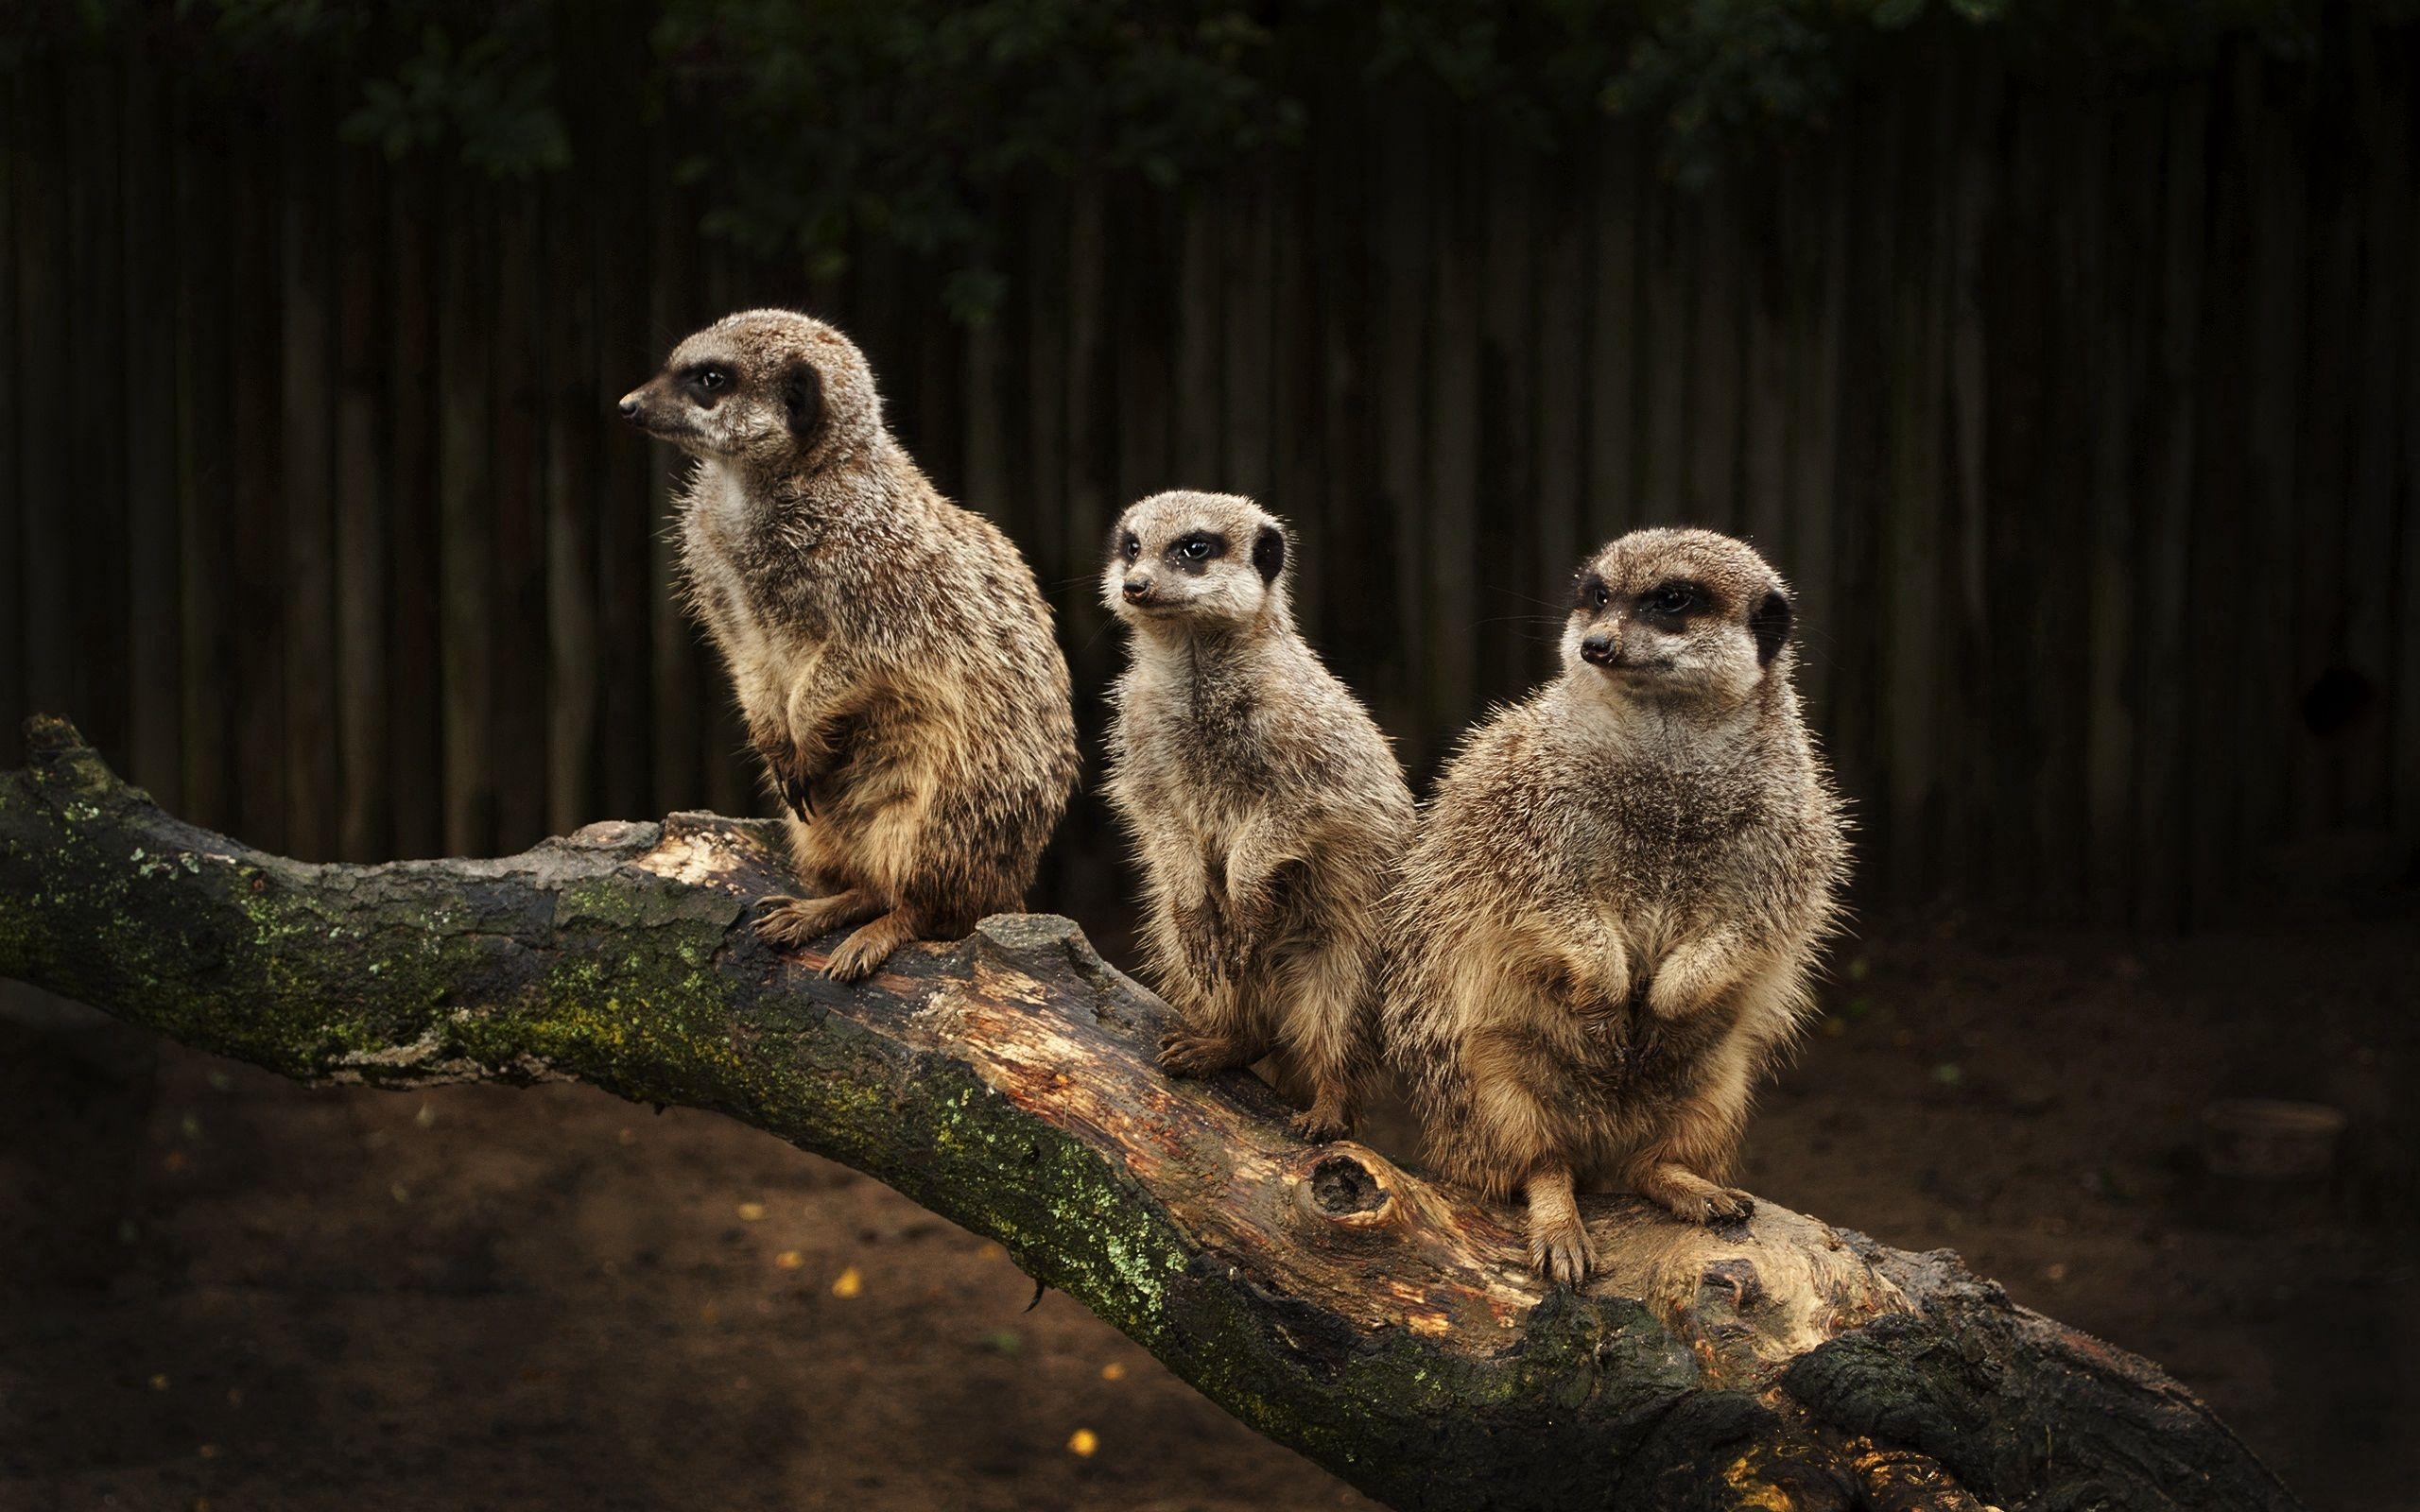 66973 download wallpaper Animals, Meerkats, Family, Hunting, Hunt, Fear, Misgiving screensavers and pictures for free